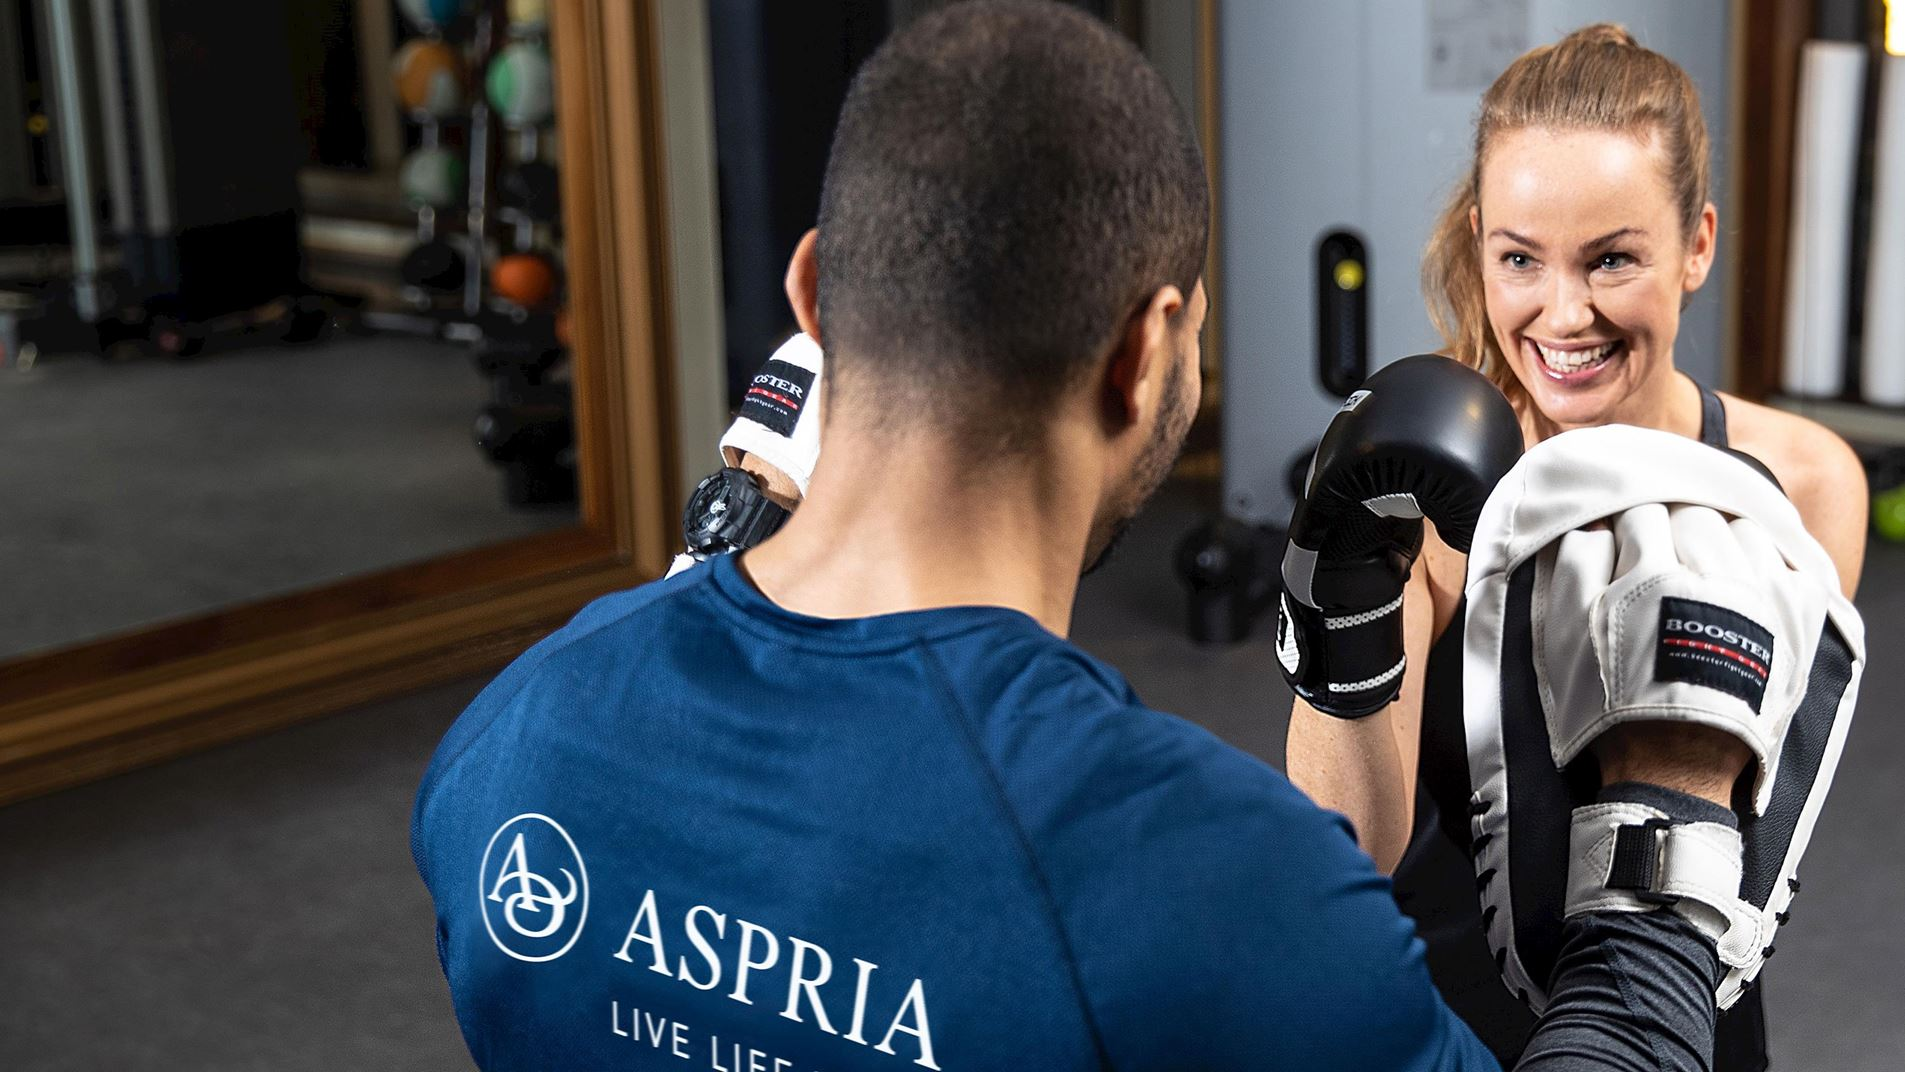 Reach your wellbeing goals at Aspria